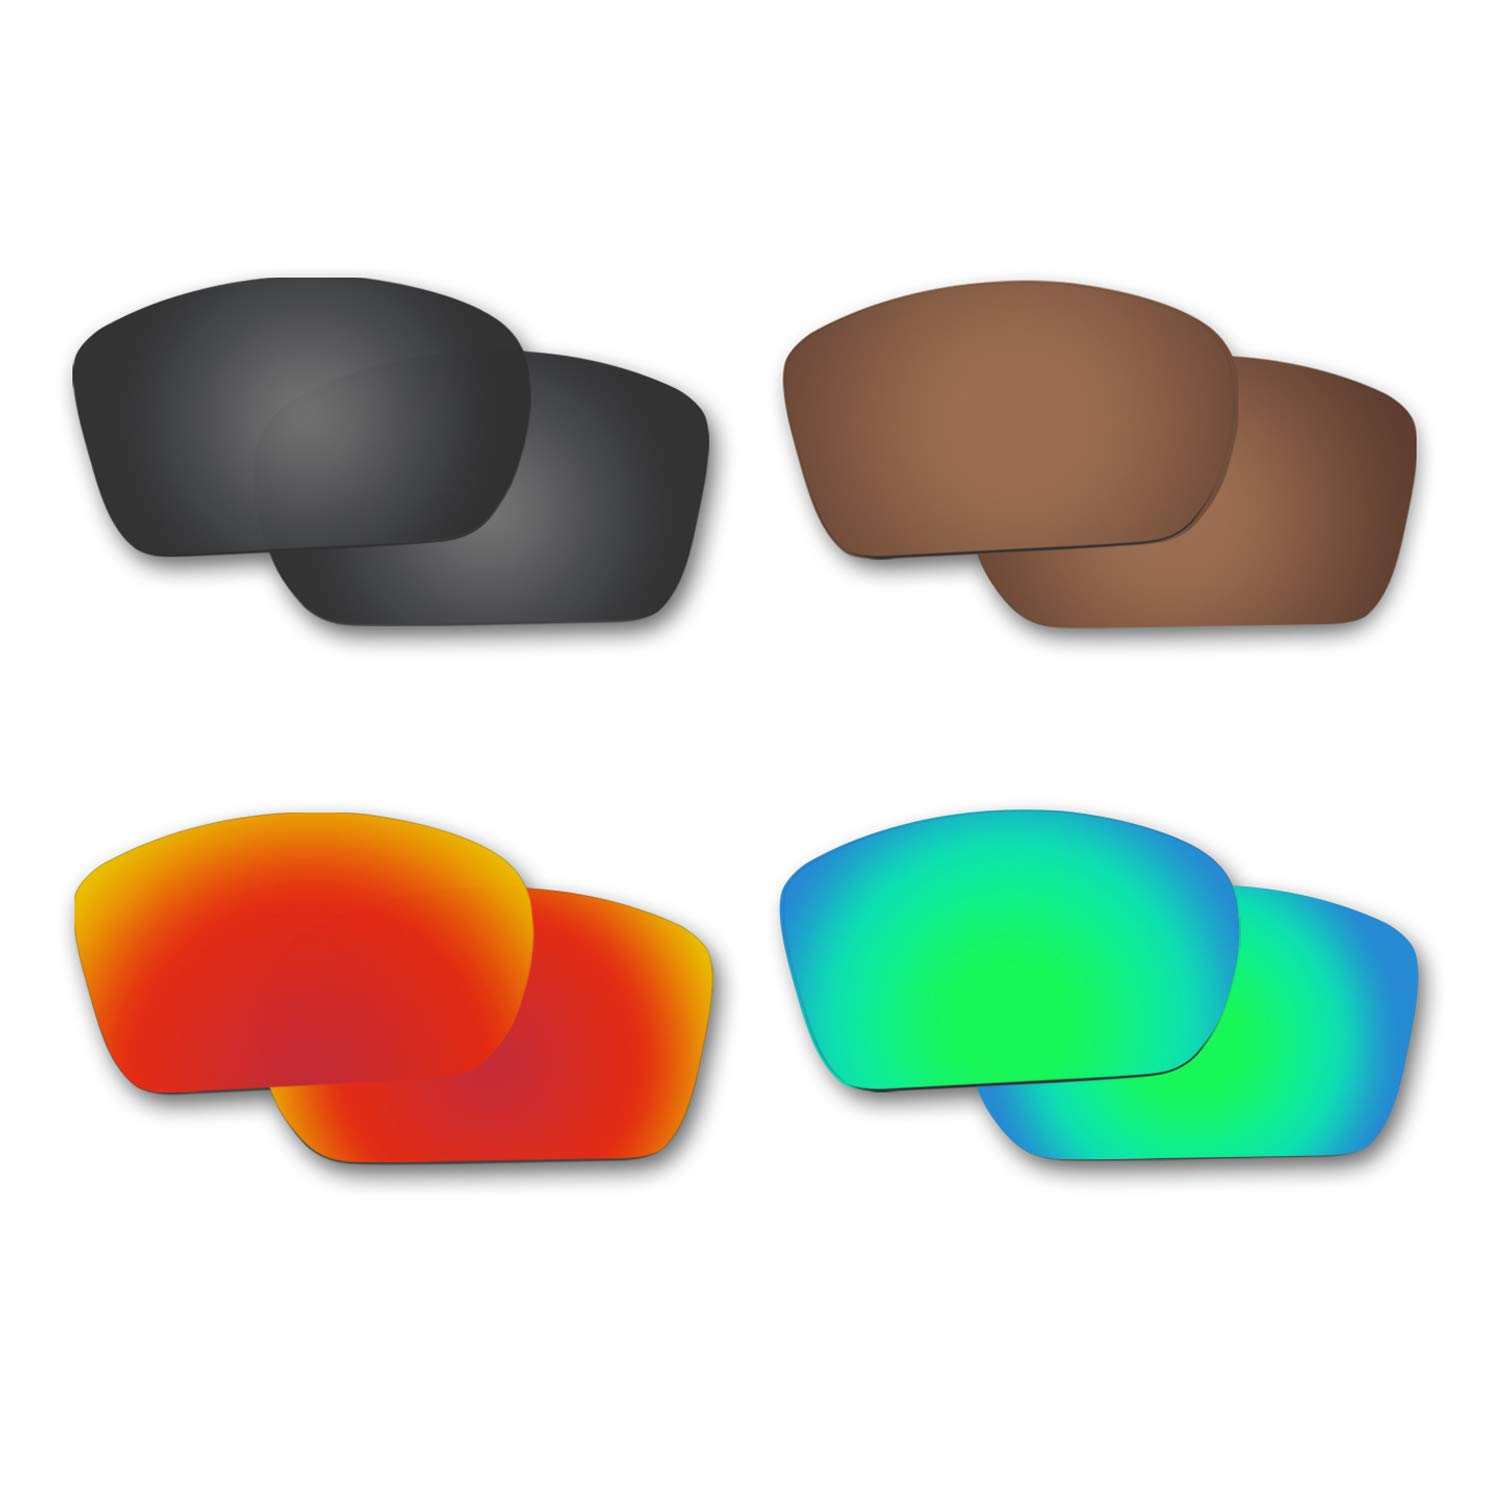 Fiskr Anti-saltwater Polarized Replacement Lenses for Oakley Big Taco Sunglasses 4 Pairs by Fiskr